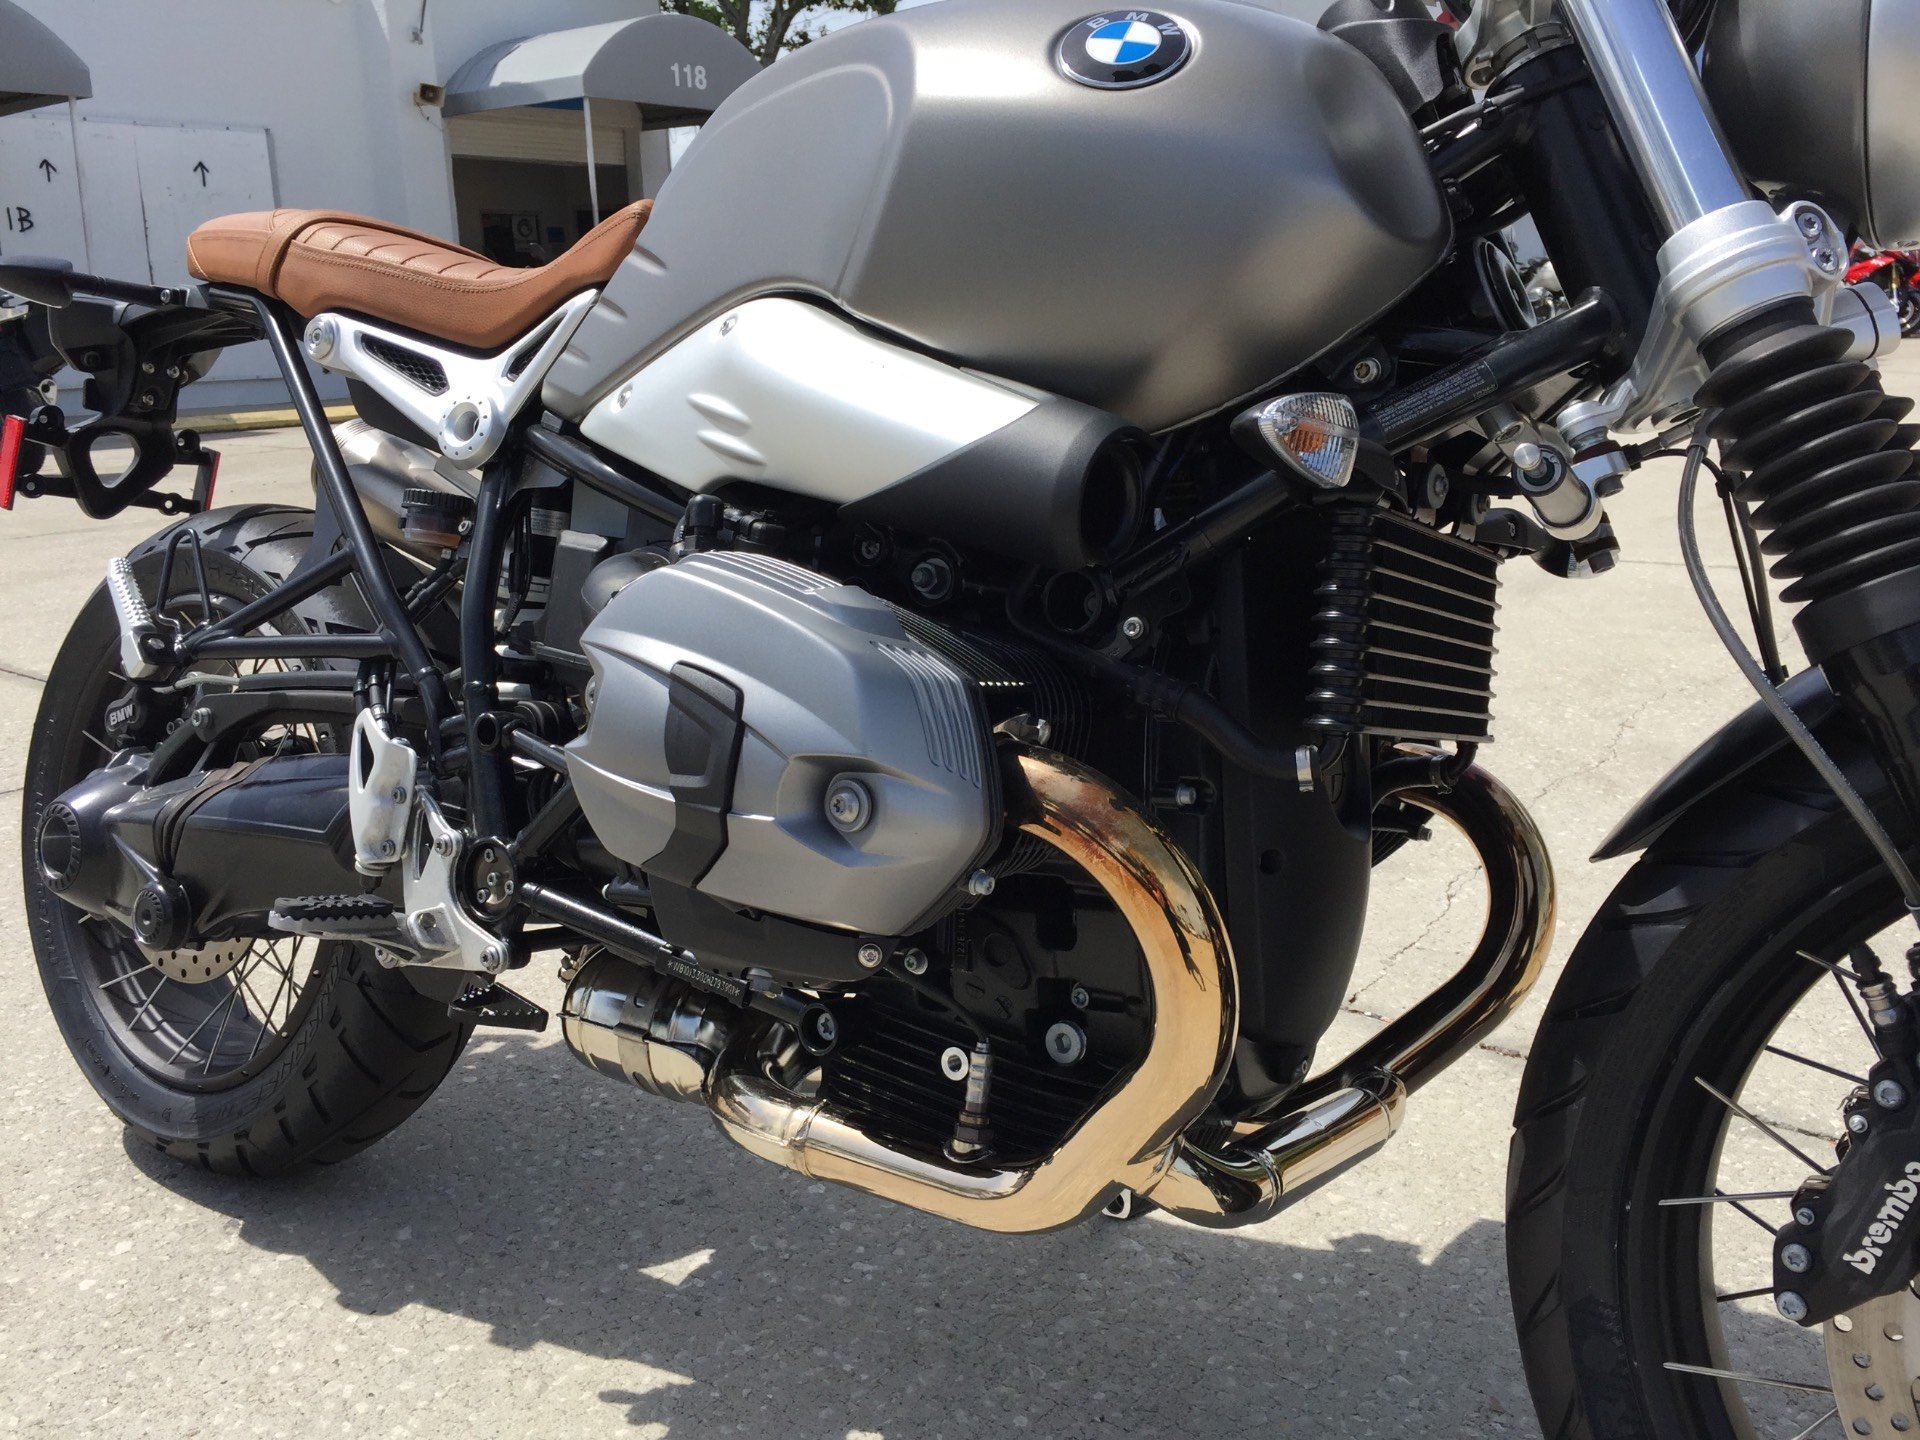 2017 BMW R nineT Scrambler in Daytona Beach, Florida